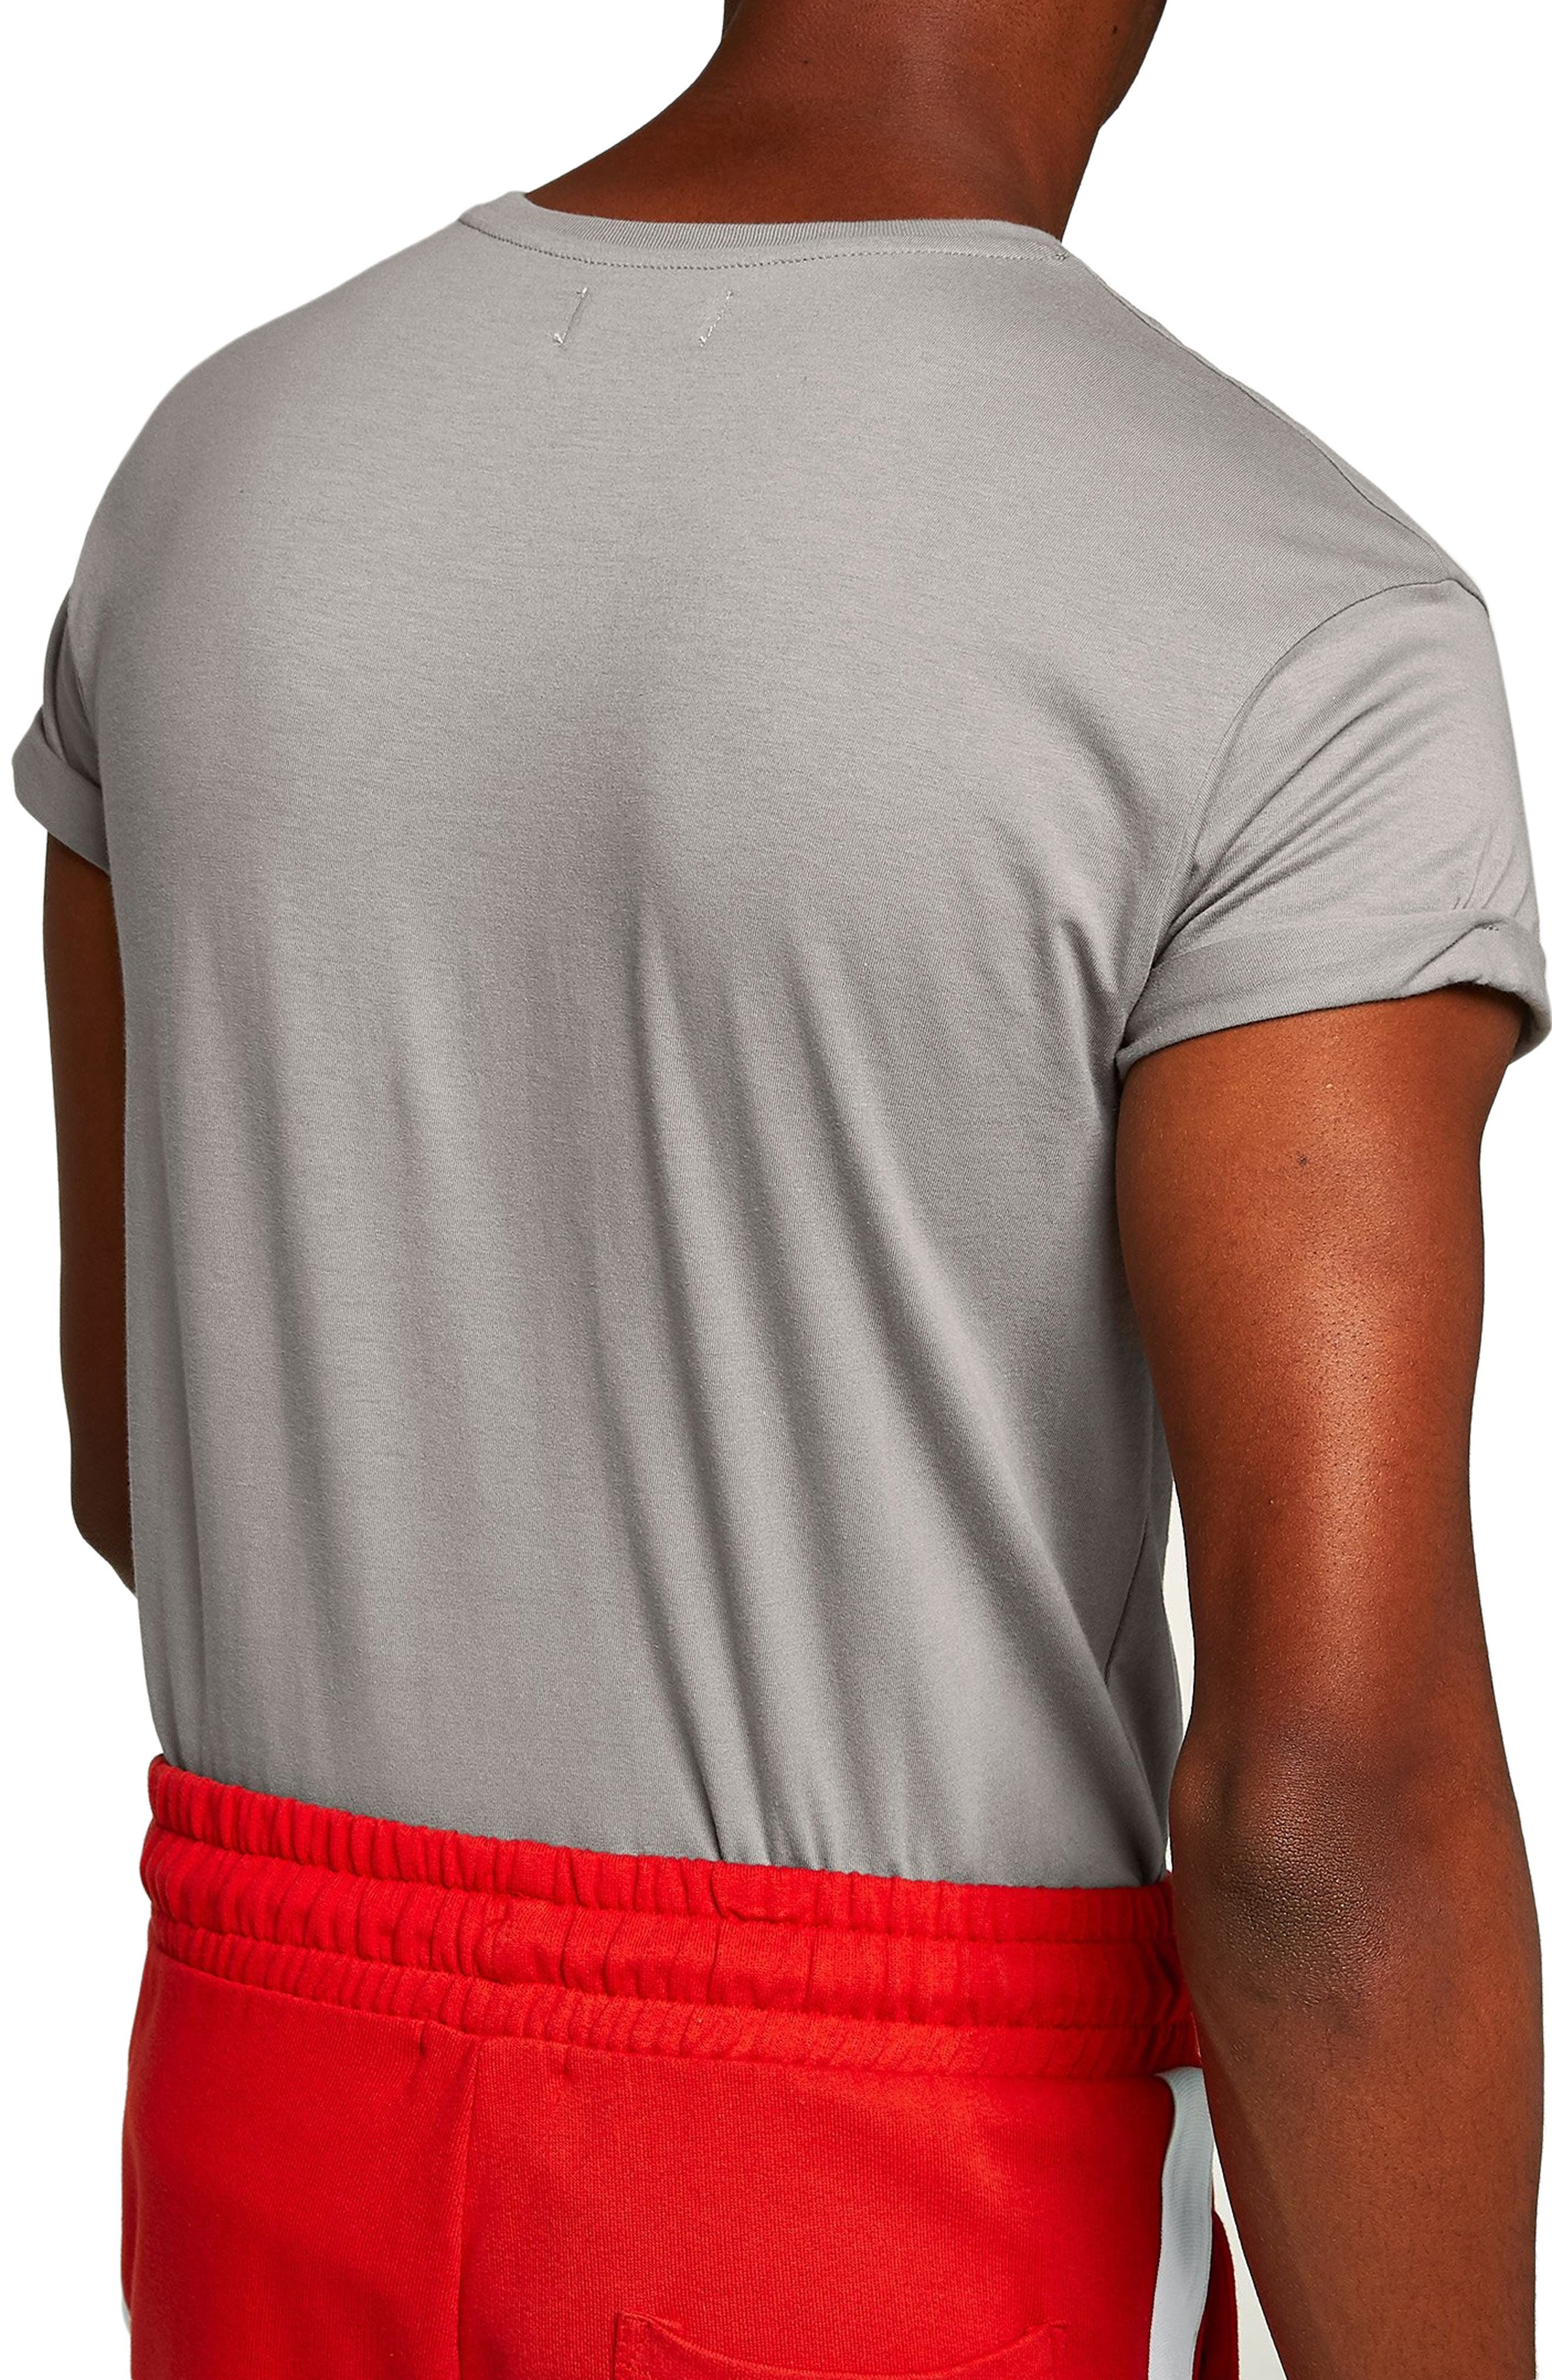 Muscle Fit Roller T-Shirt,                             Alternate thumbnail 2, color,                             CHARCOAL